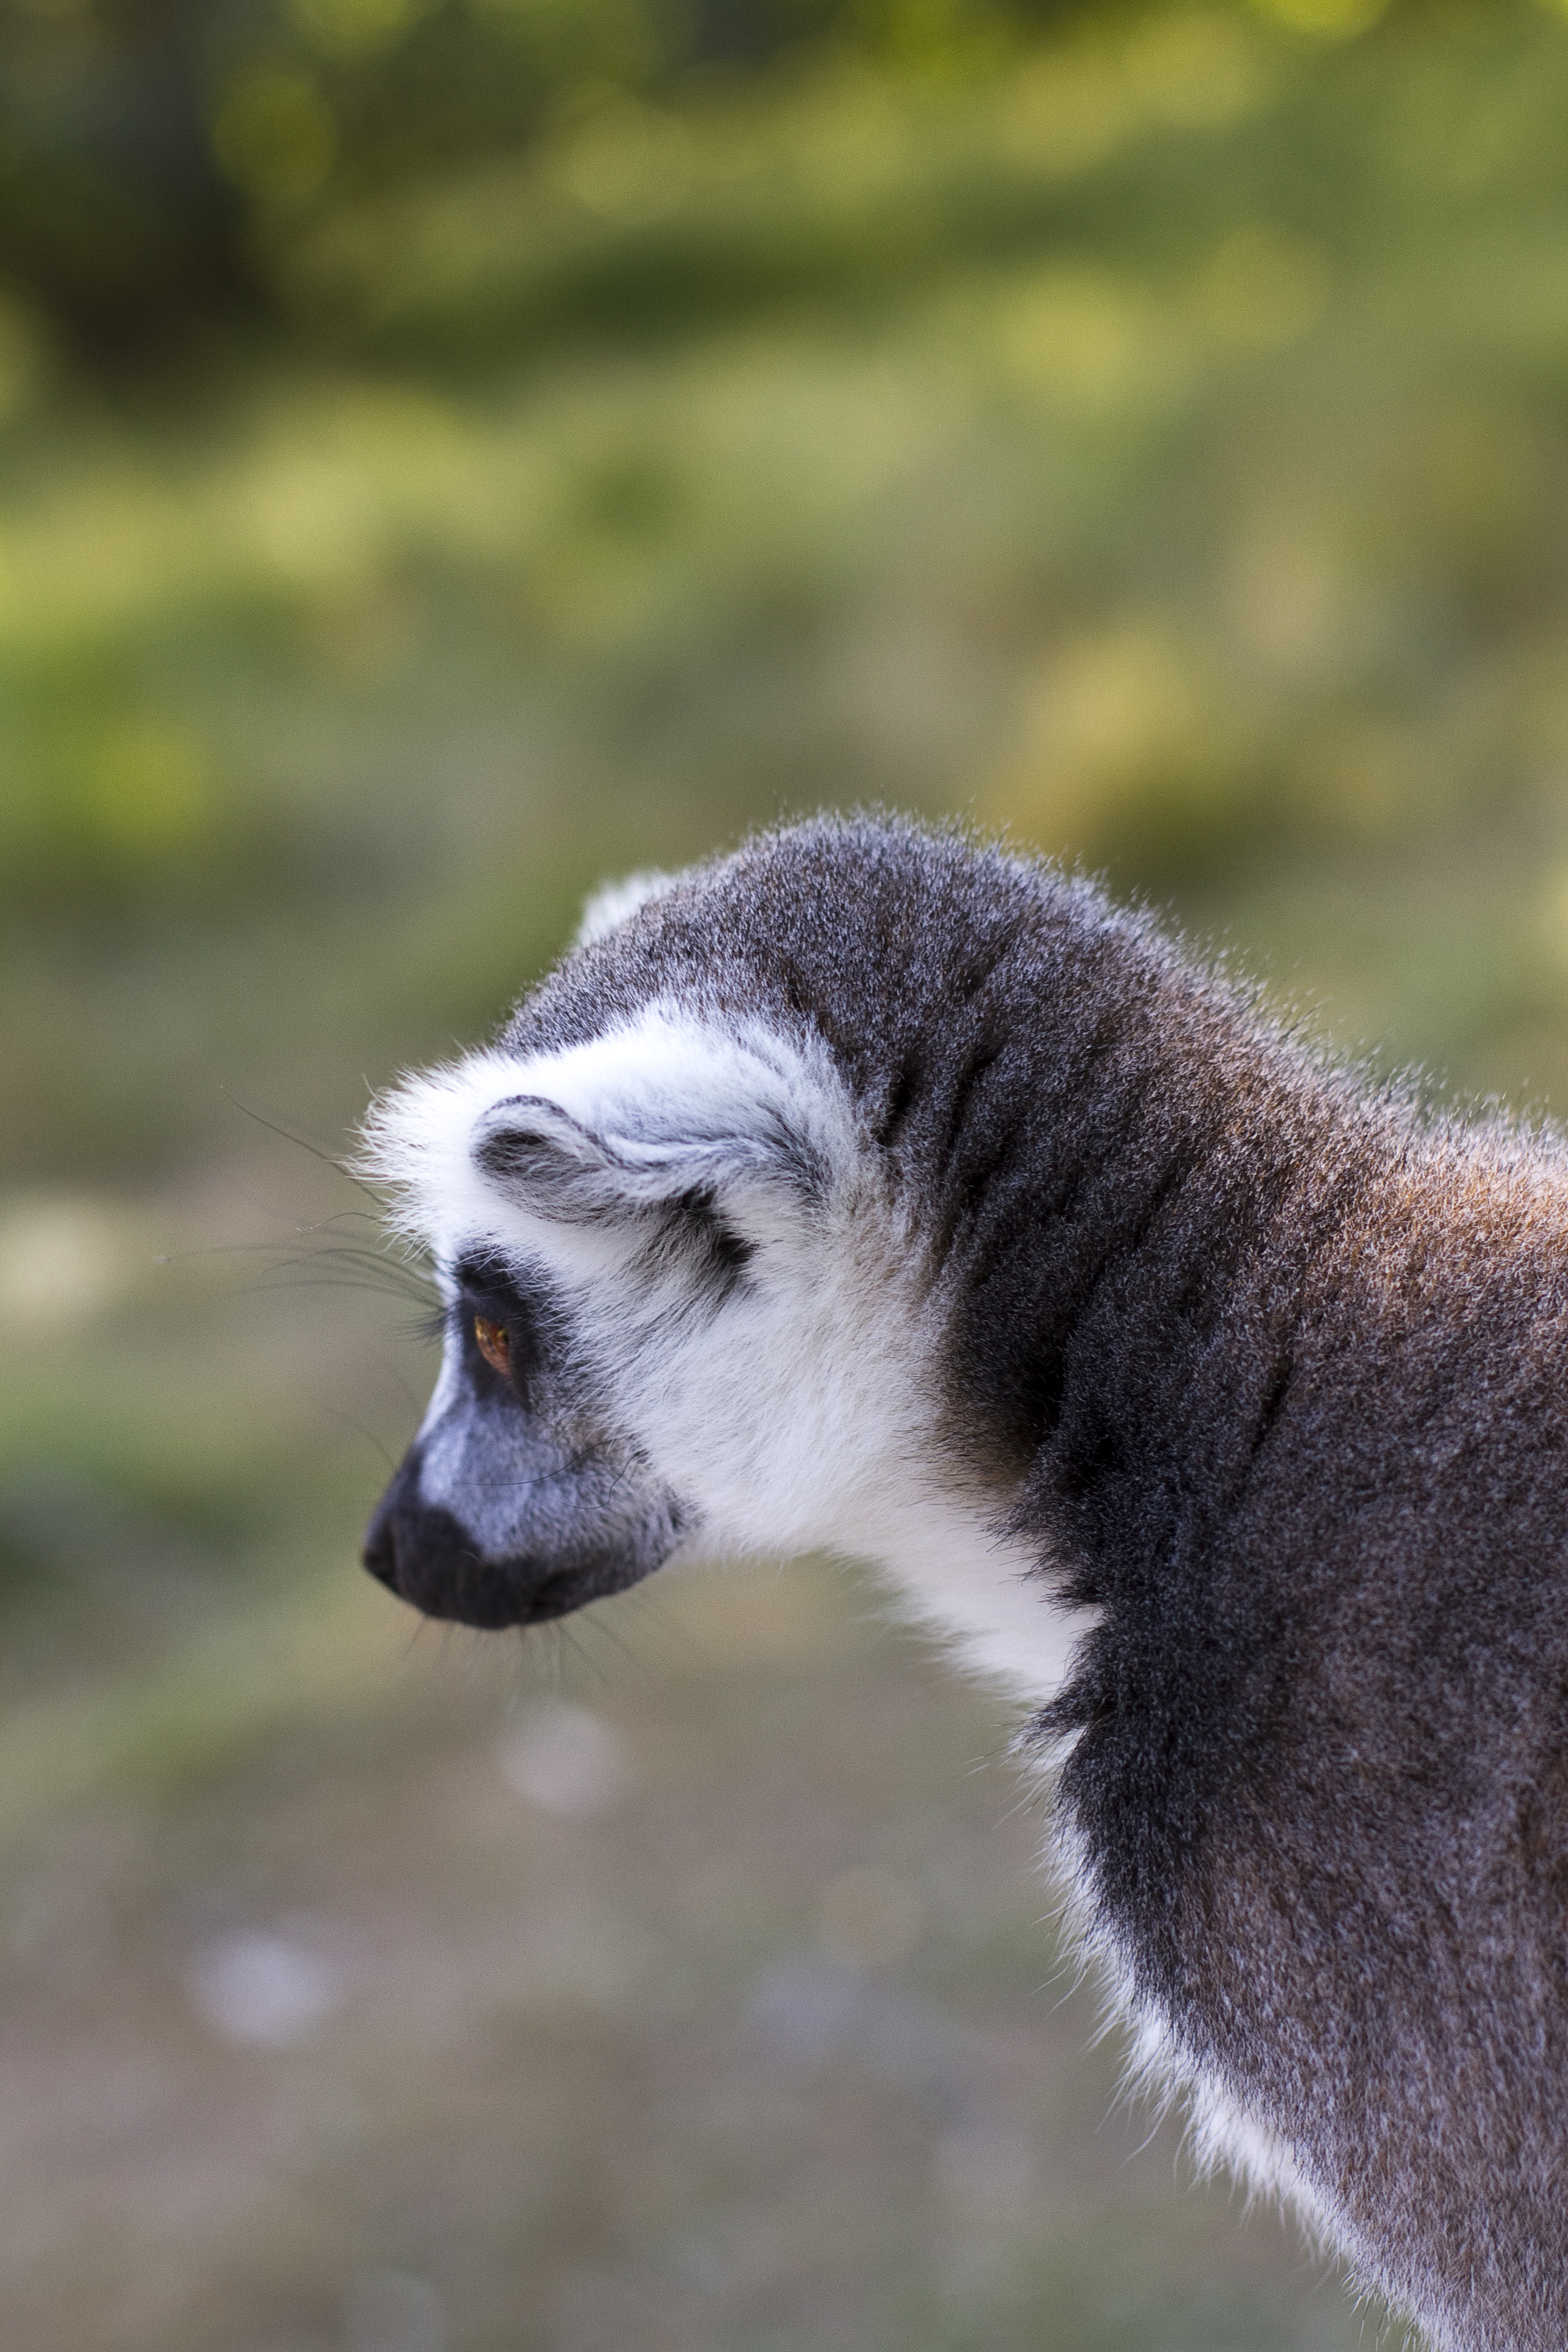 111375 download wallpaper Animals, Lemur, Grey, Animal, Wildlife screensavers and pictures for free